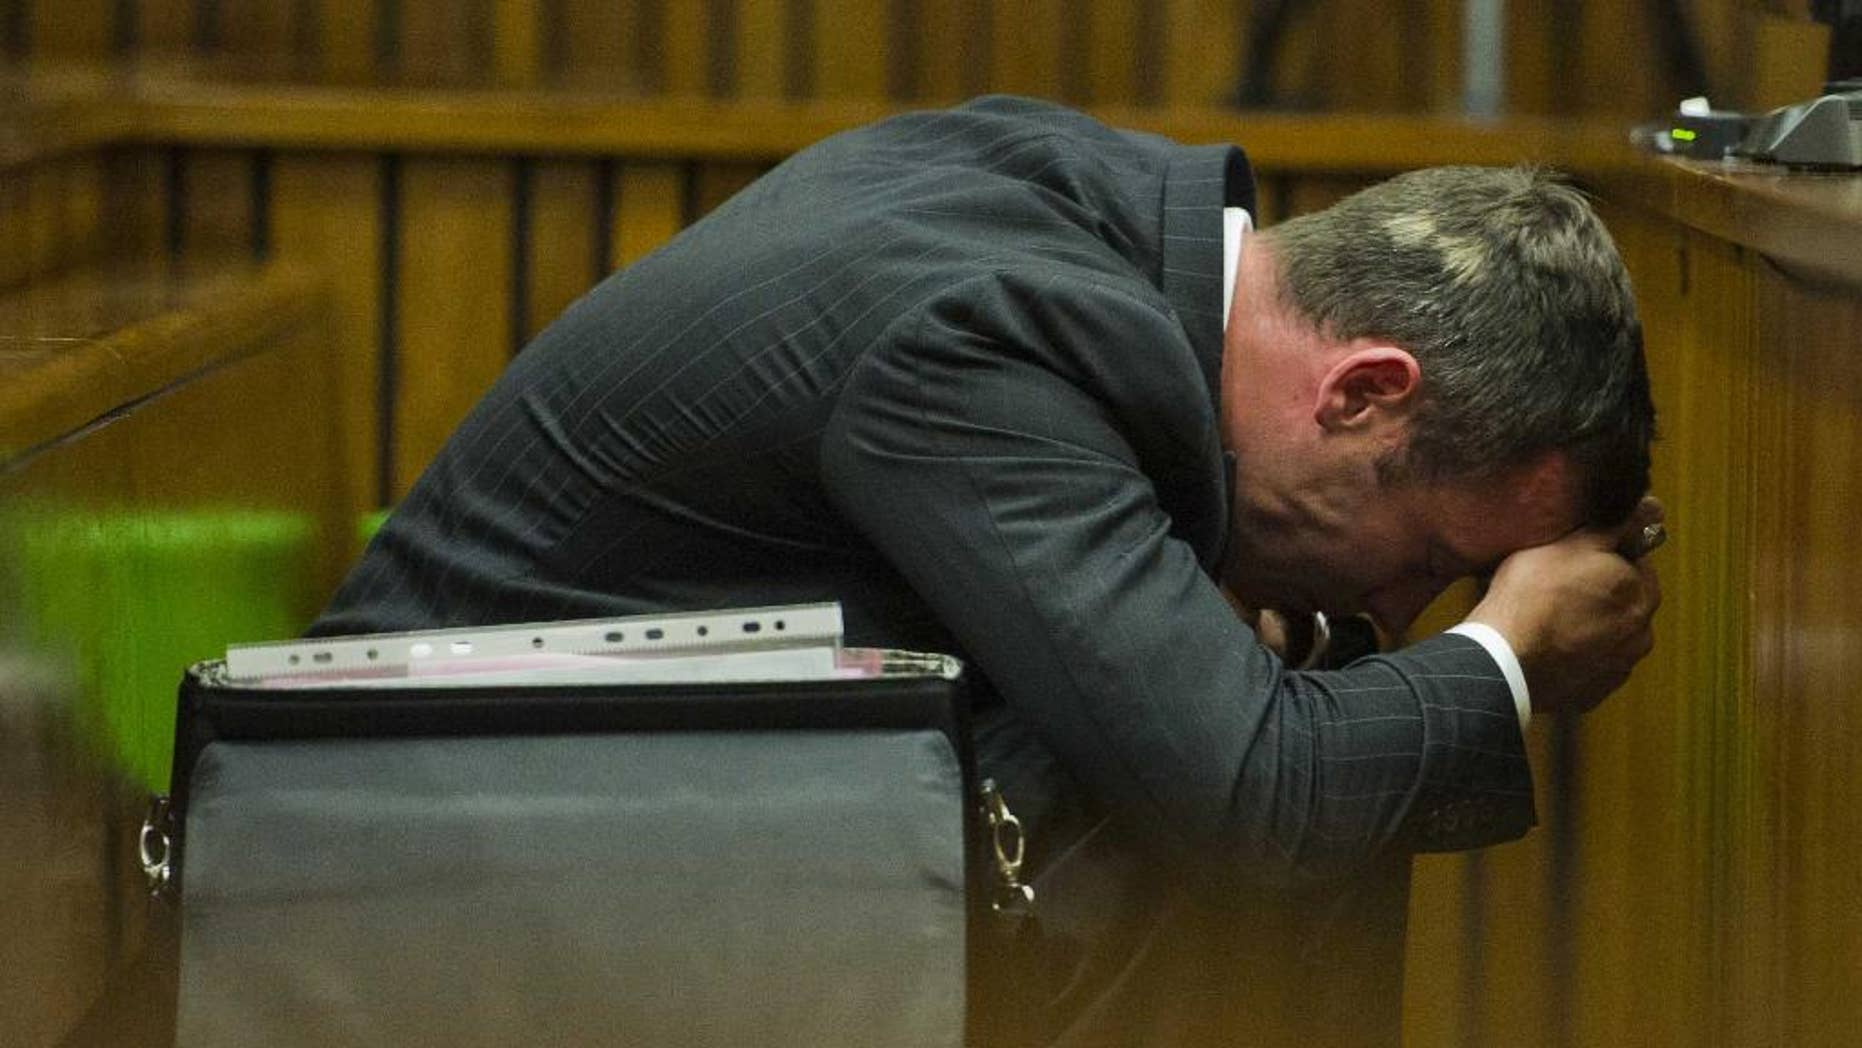 Oscar Pistorius puts his hands to his head as he listens to forensic evidence during his trial in court in Pretoria, South Africa, Thursday March 13, 2014. Pistorius is charged with the shooting death of his girlfriend Reeva Steenkamp on Valentines Day in 2013. (AP Photo/Alet Pretorius, Pool)